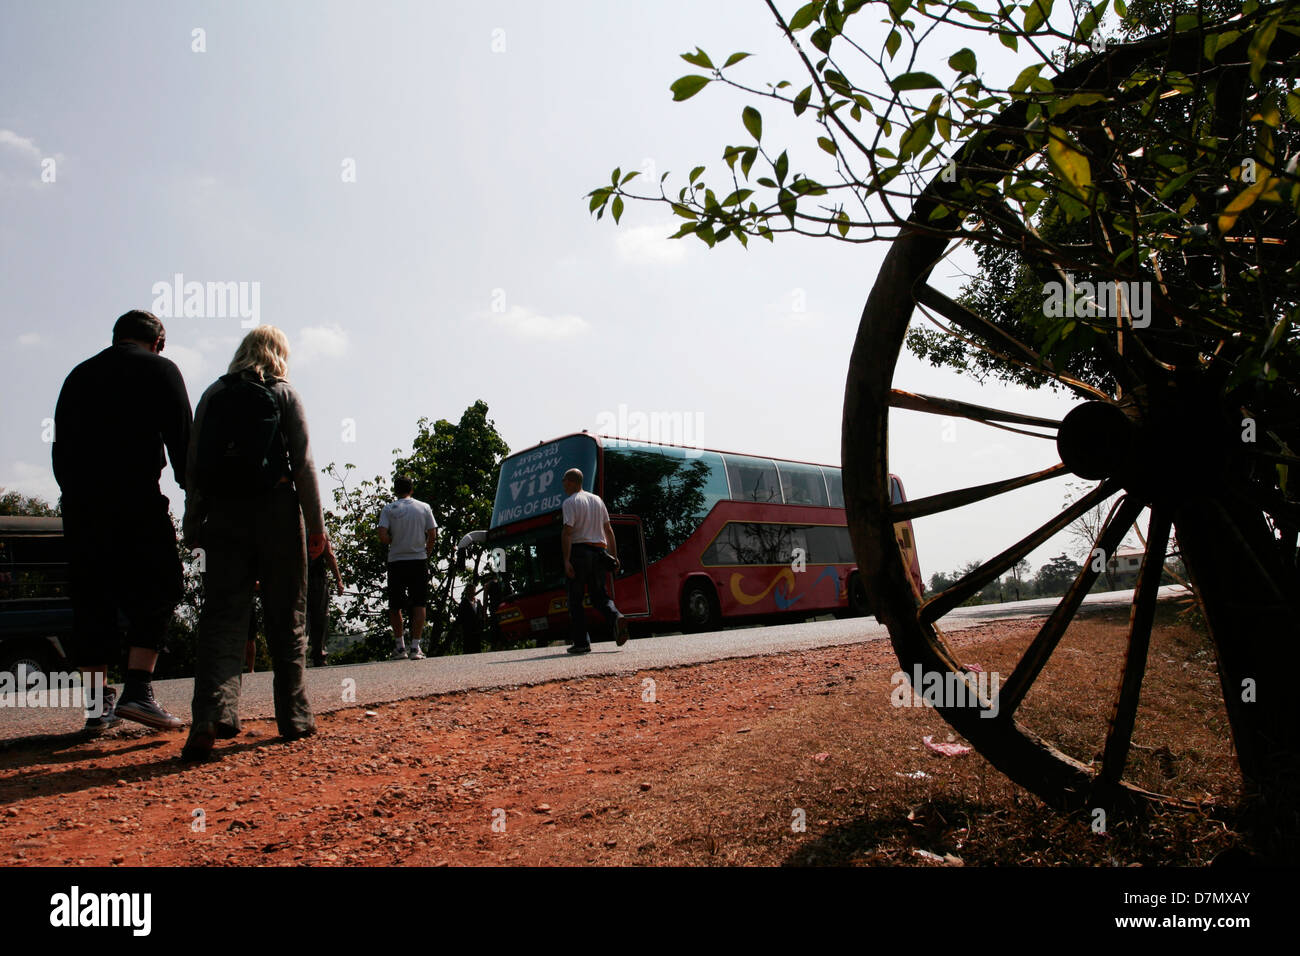 Tourists embark on their bus after a break at a road side stop between Vientiane and Van Vieng. - Stock Image